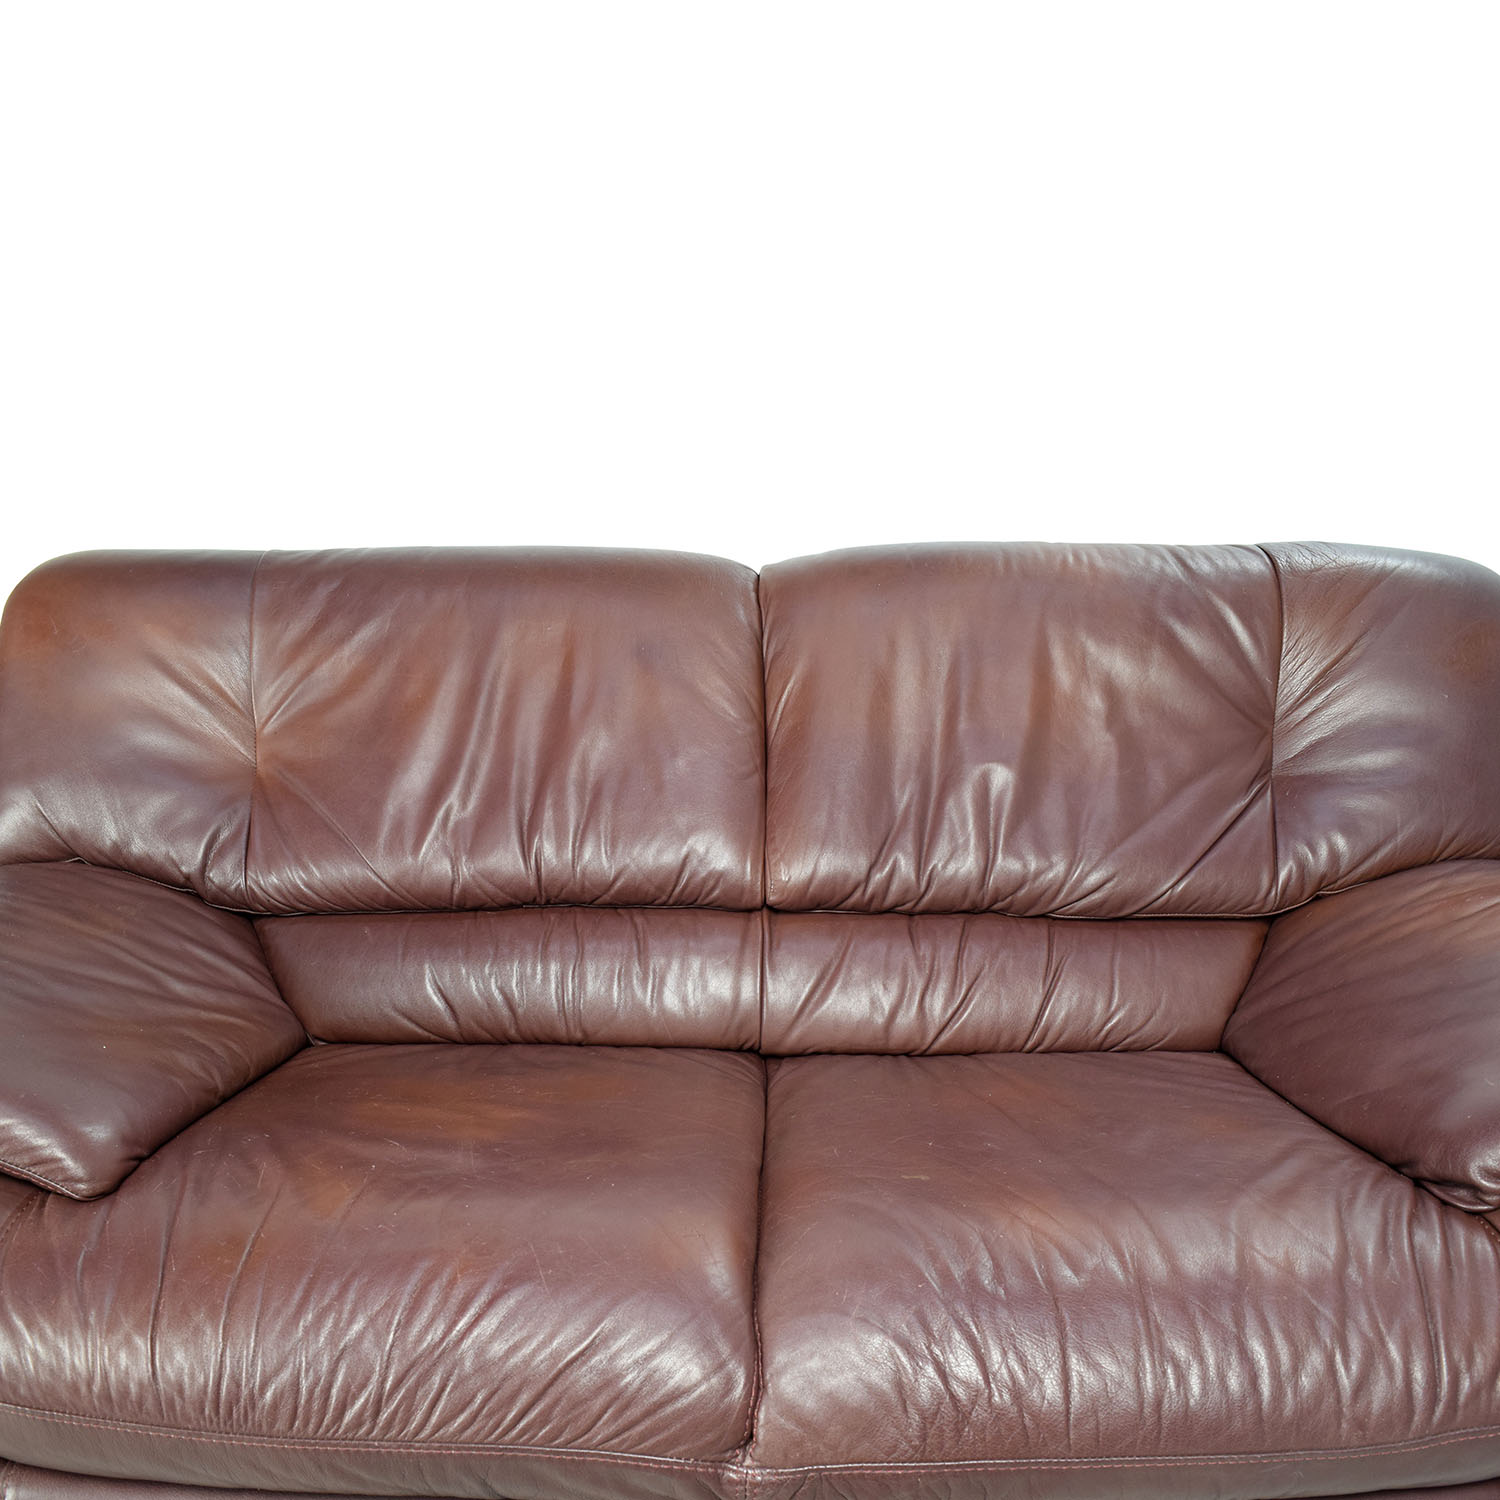 Exceptionnel ... Maurice Villency Maurice Villency Brown Leather Sofa Nj